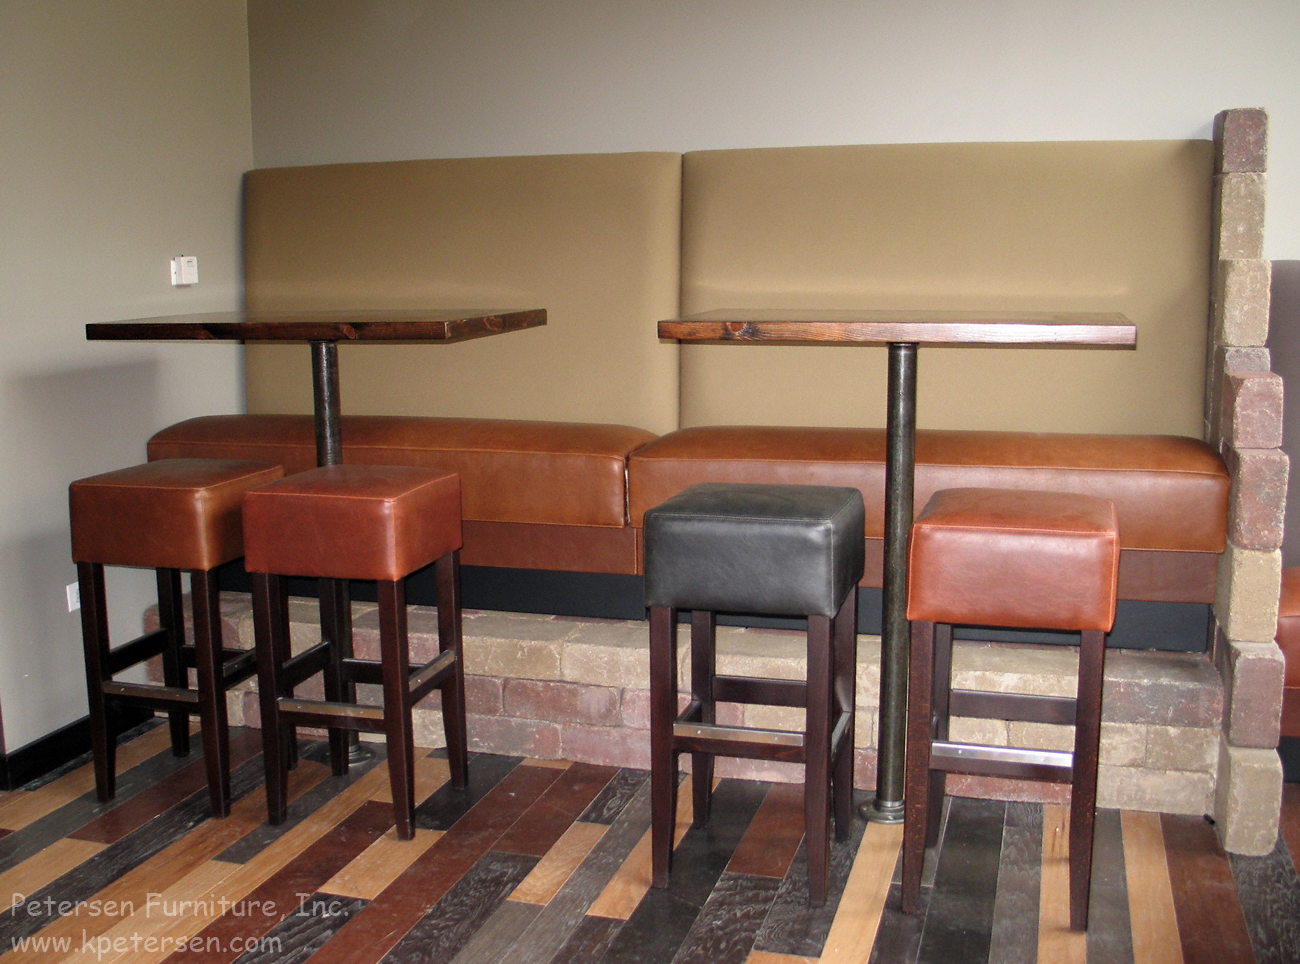 restaurant_booth_banquette_bar_height2.j